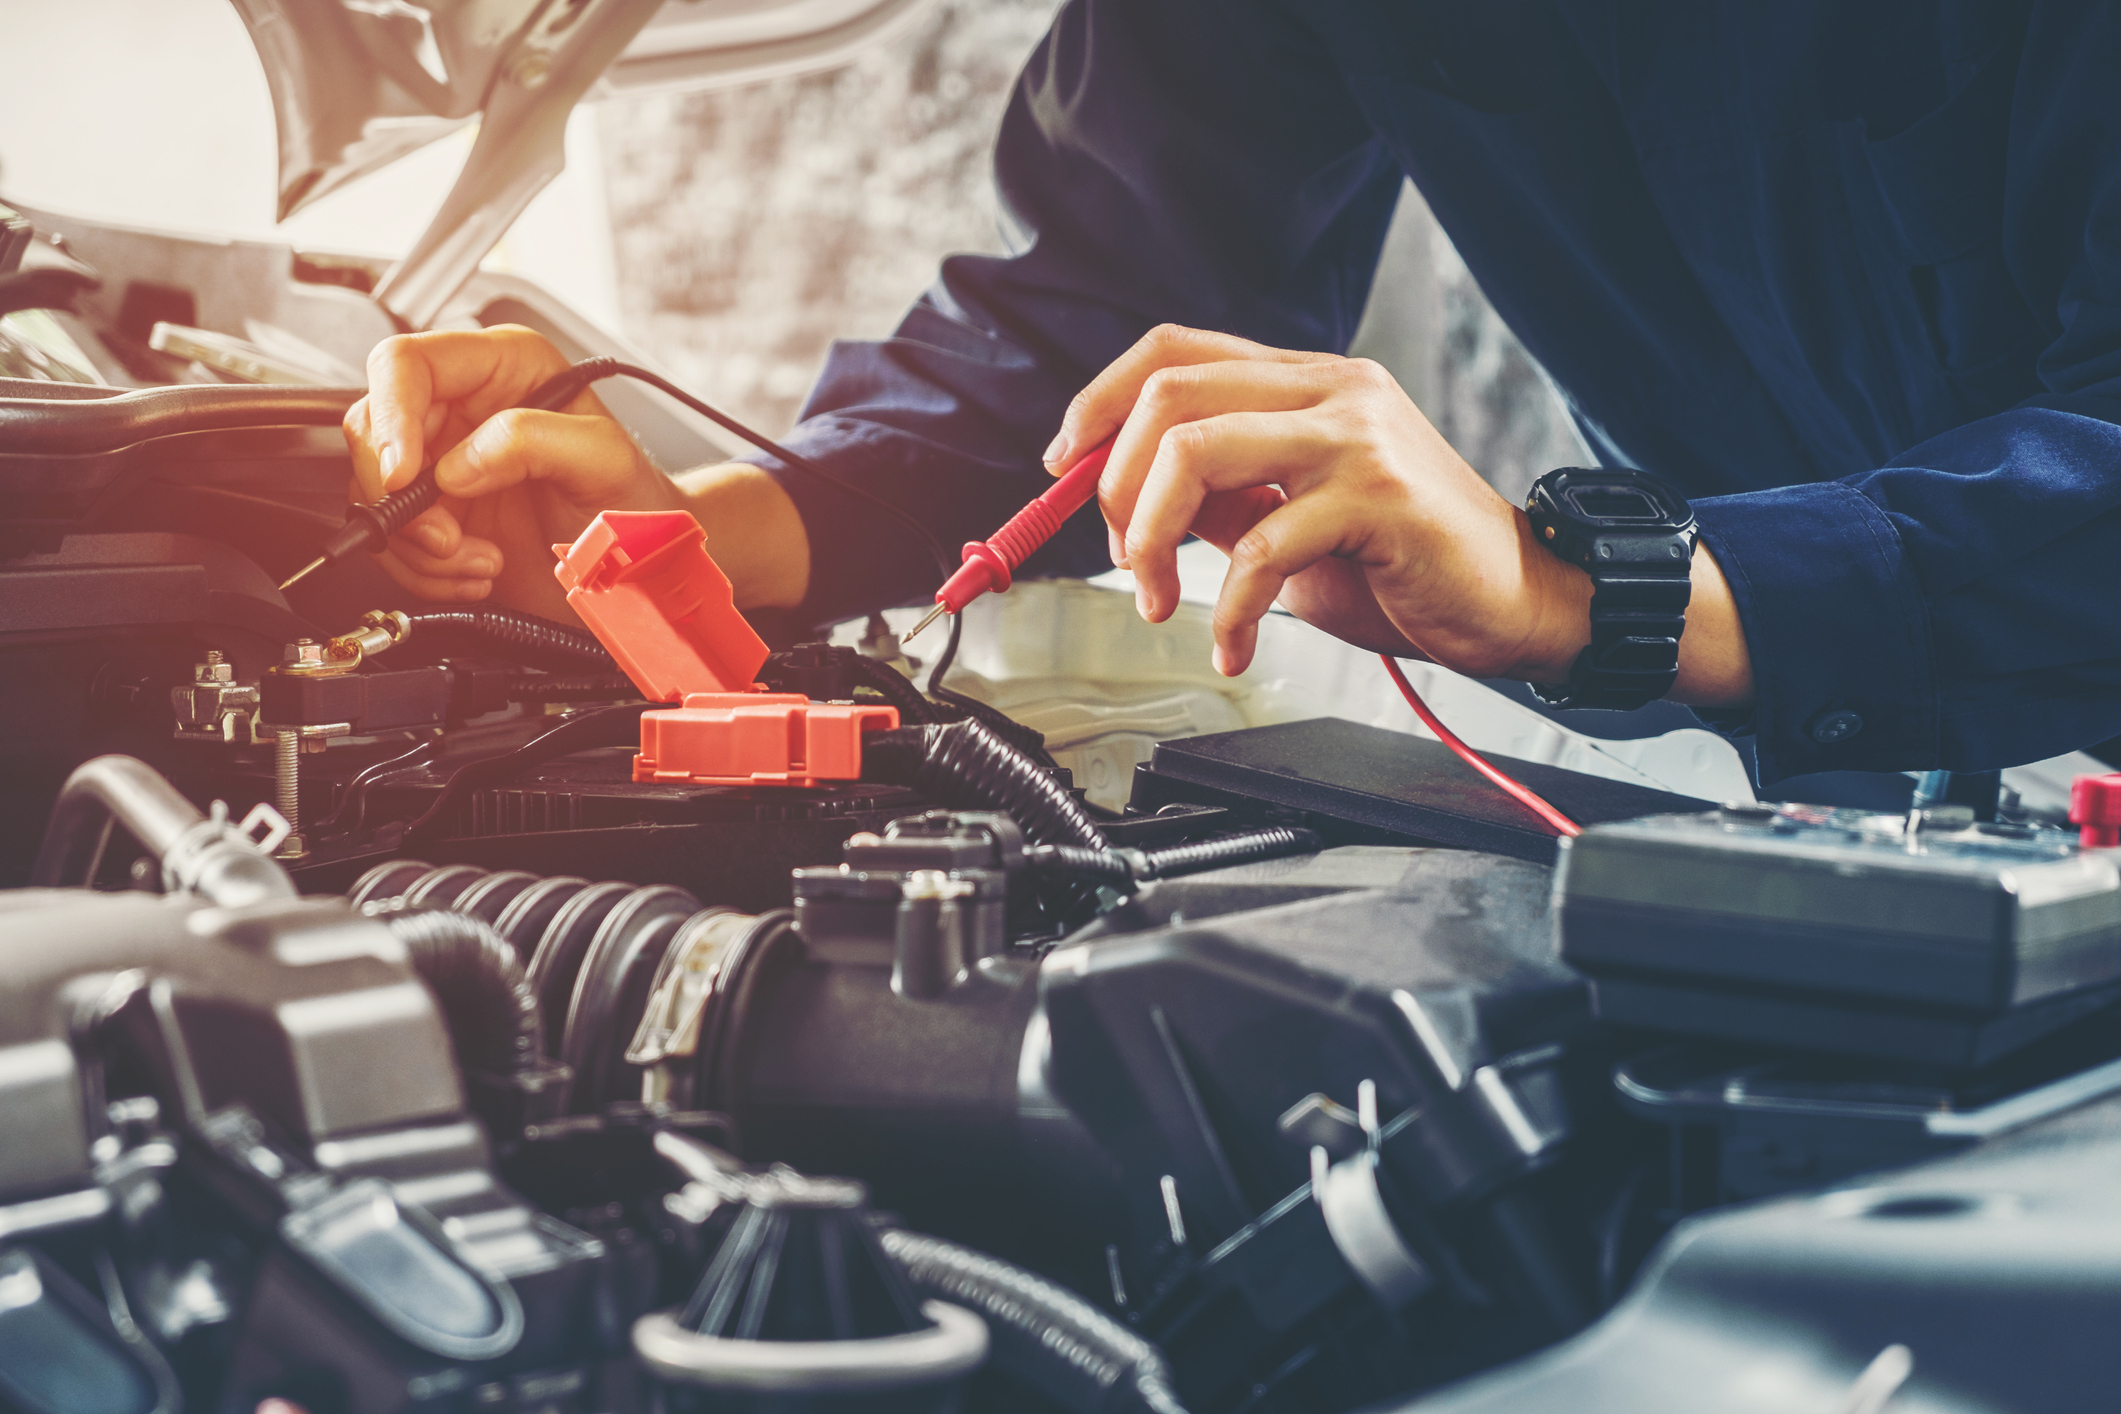 Buick GMC Battery Test and Replacement Service in Taylor, MI